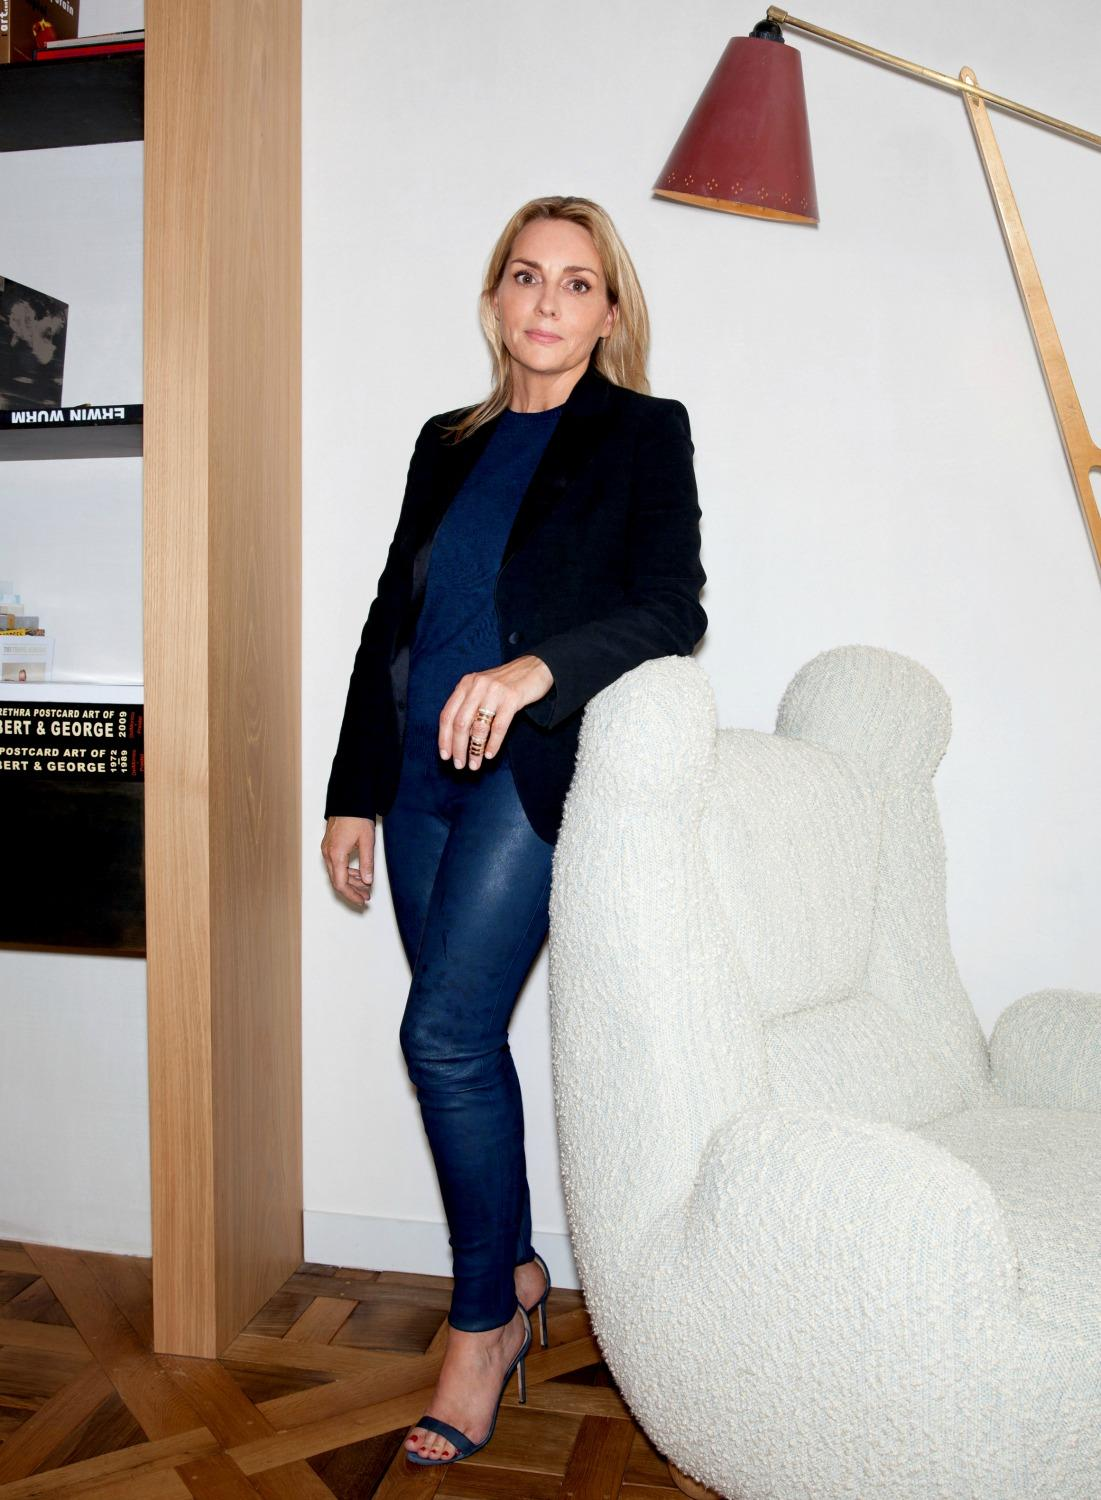 les secrets d 39 isabelle dubern pour s 39 habiller au travail madame figaro. Black Bedroom Furniture Sets. Home Design Ideas